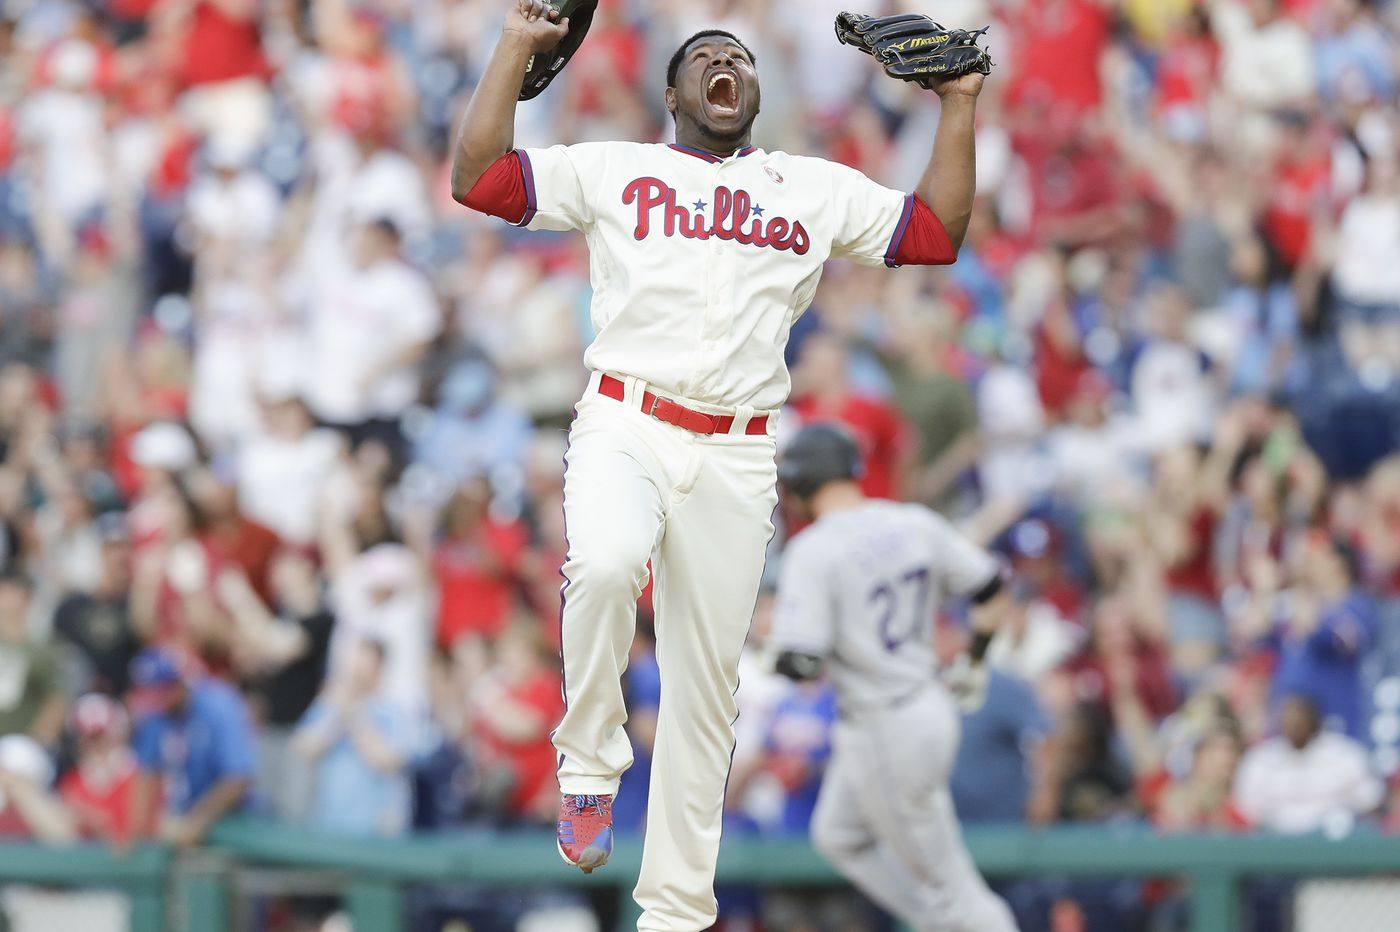 Phillies' reliever Hector Neris is a 'dominant force,' Gabe Kapler says